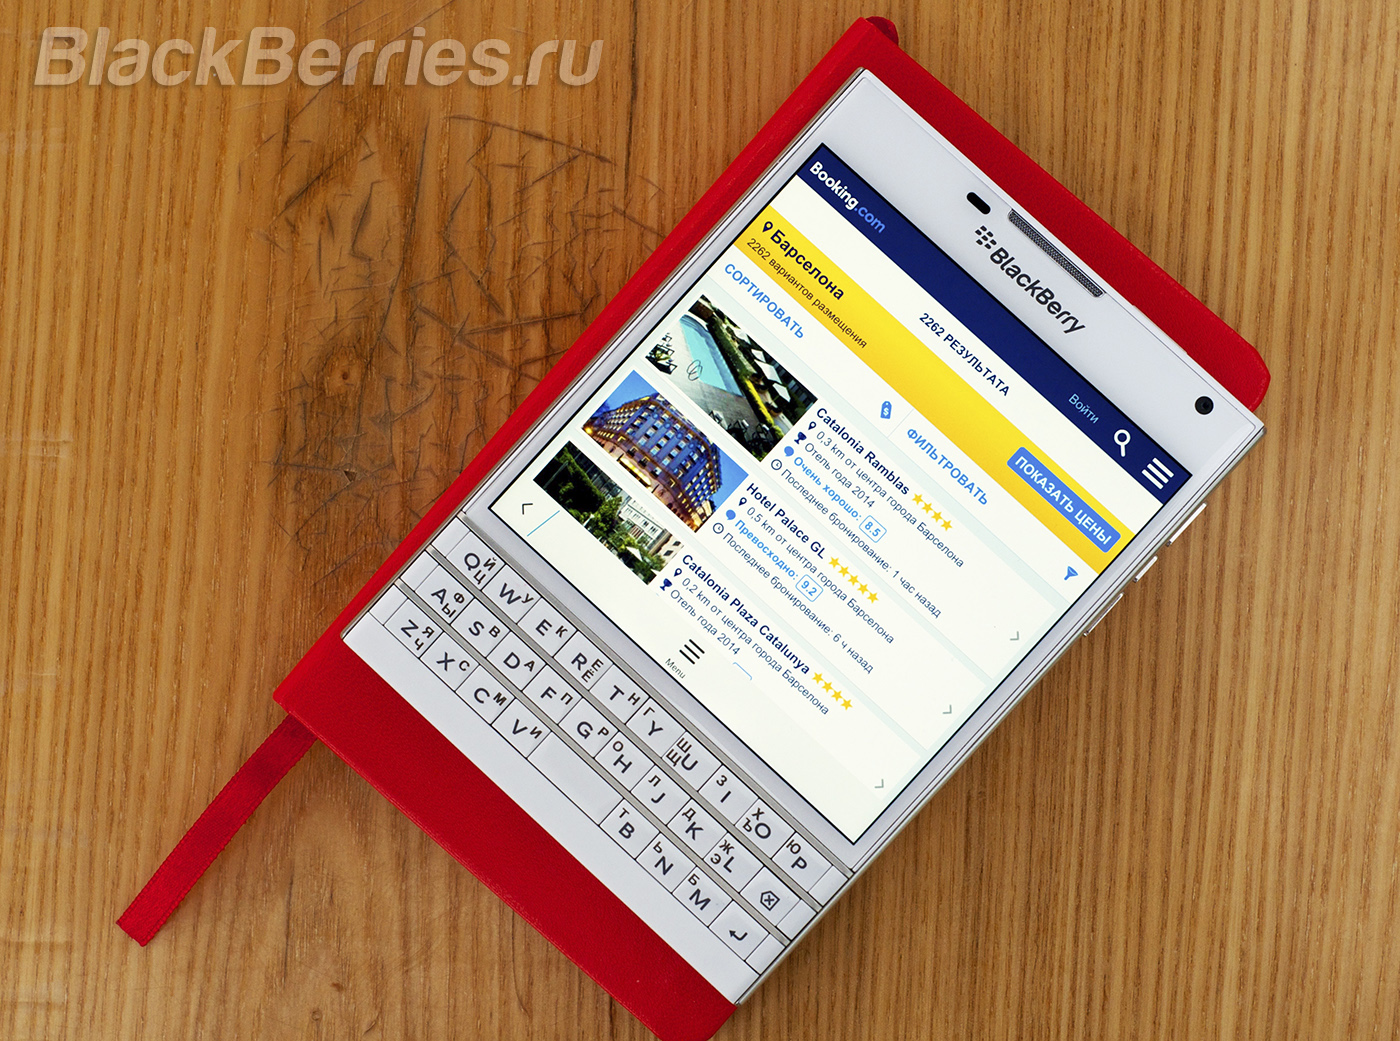 BlackBerry-Passport-App-23-05-06